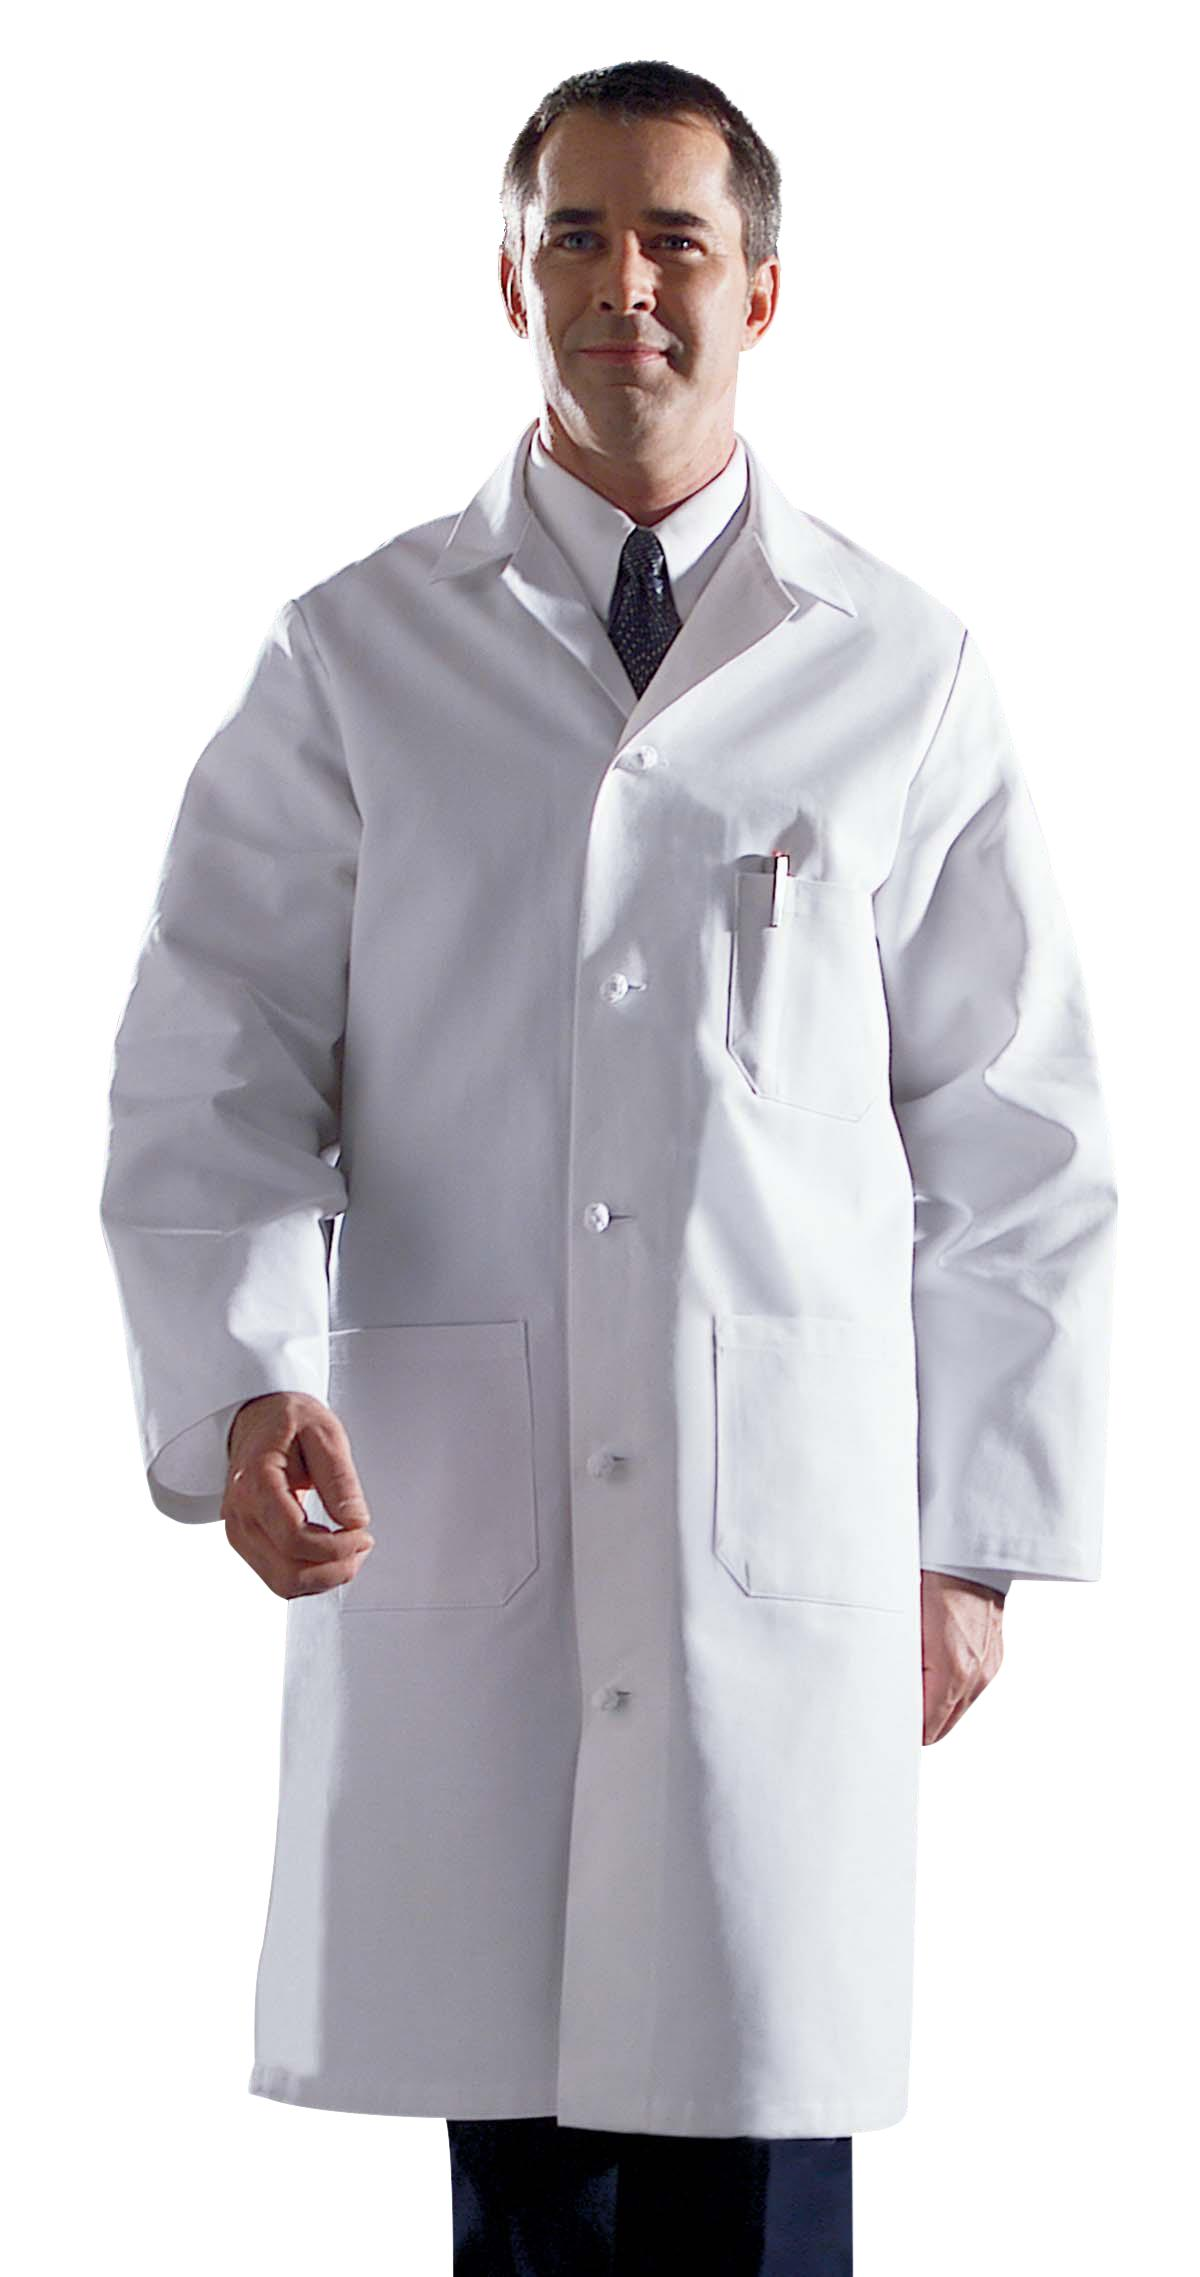 Lab Coat, MDL-MDT17WHT52